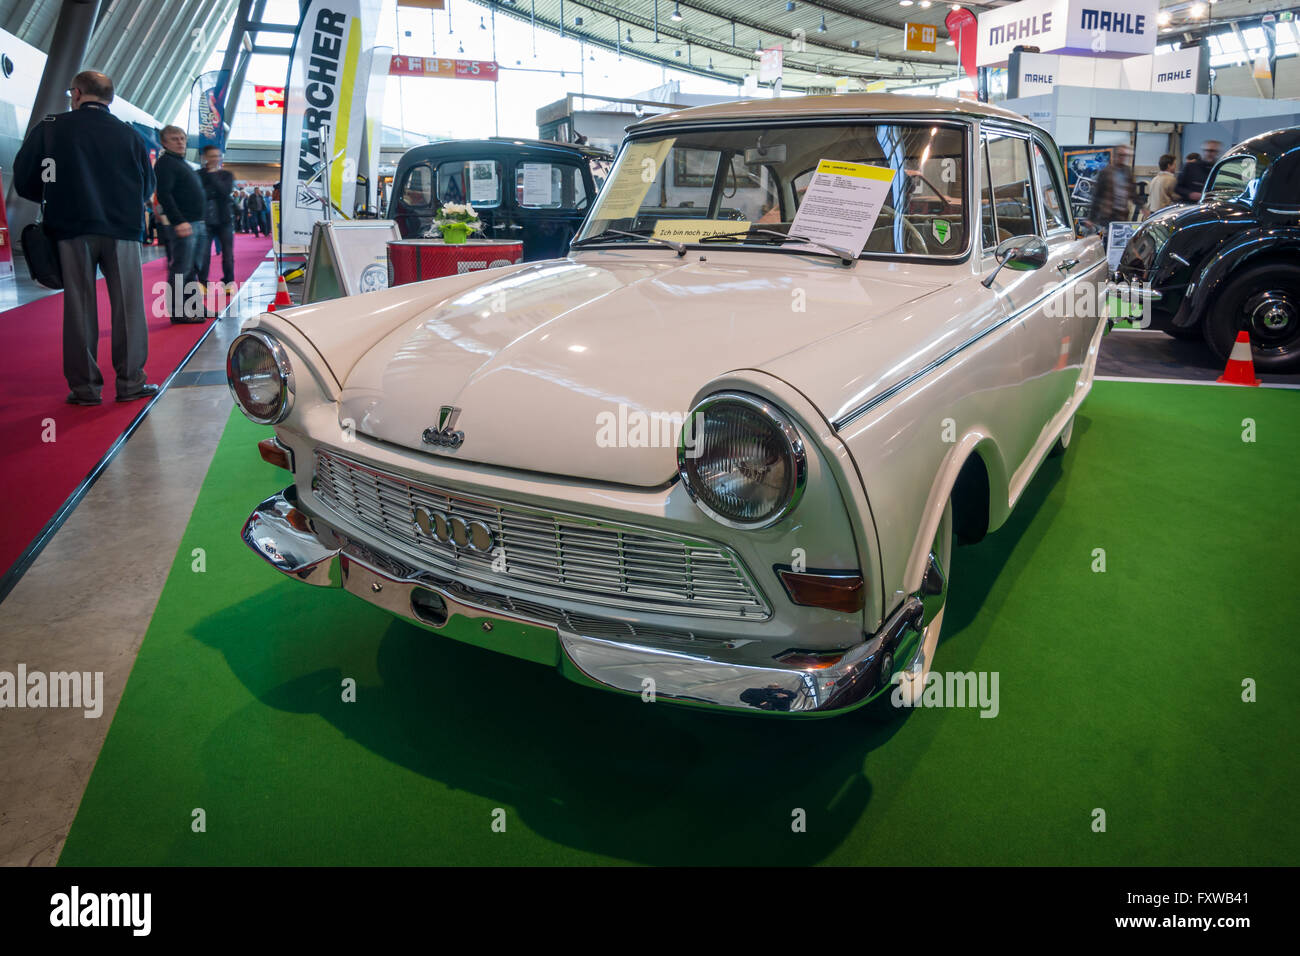 auto union dkw stockfotos auto union dkw bilder alamy. Black Bedroom Furniture Sets. Home Design Ideas